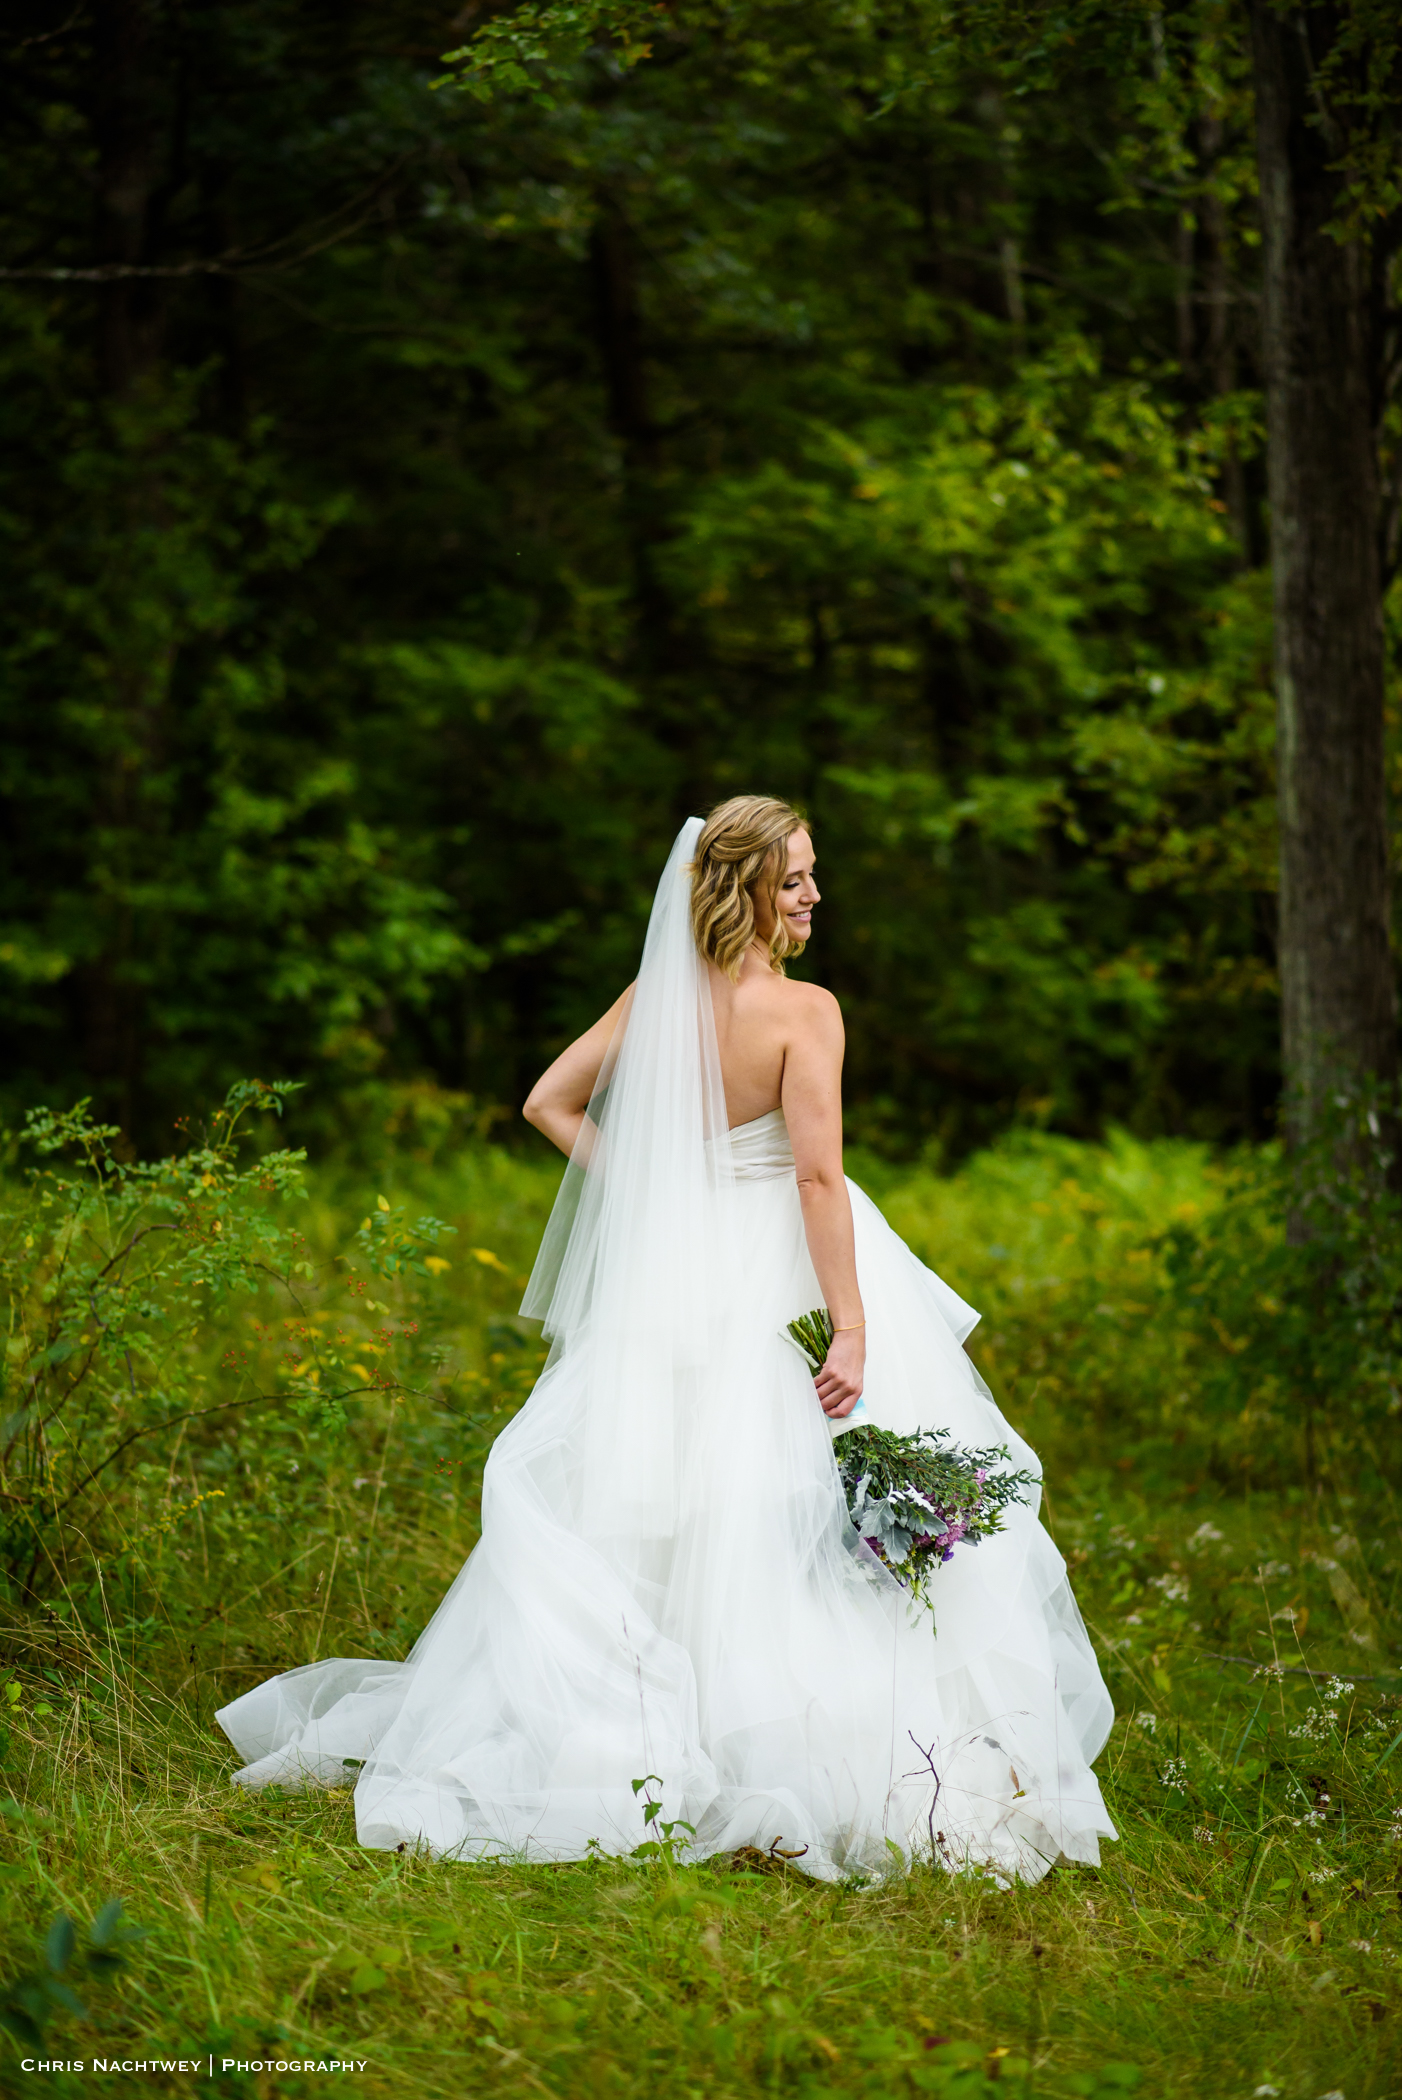 artistic-wedding-photographer-granby-connecticut-chris-nachtwey-photography-2018-32.jpg